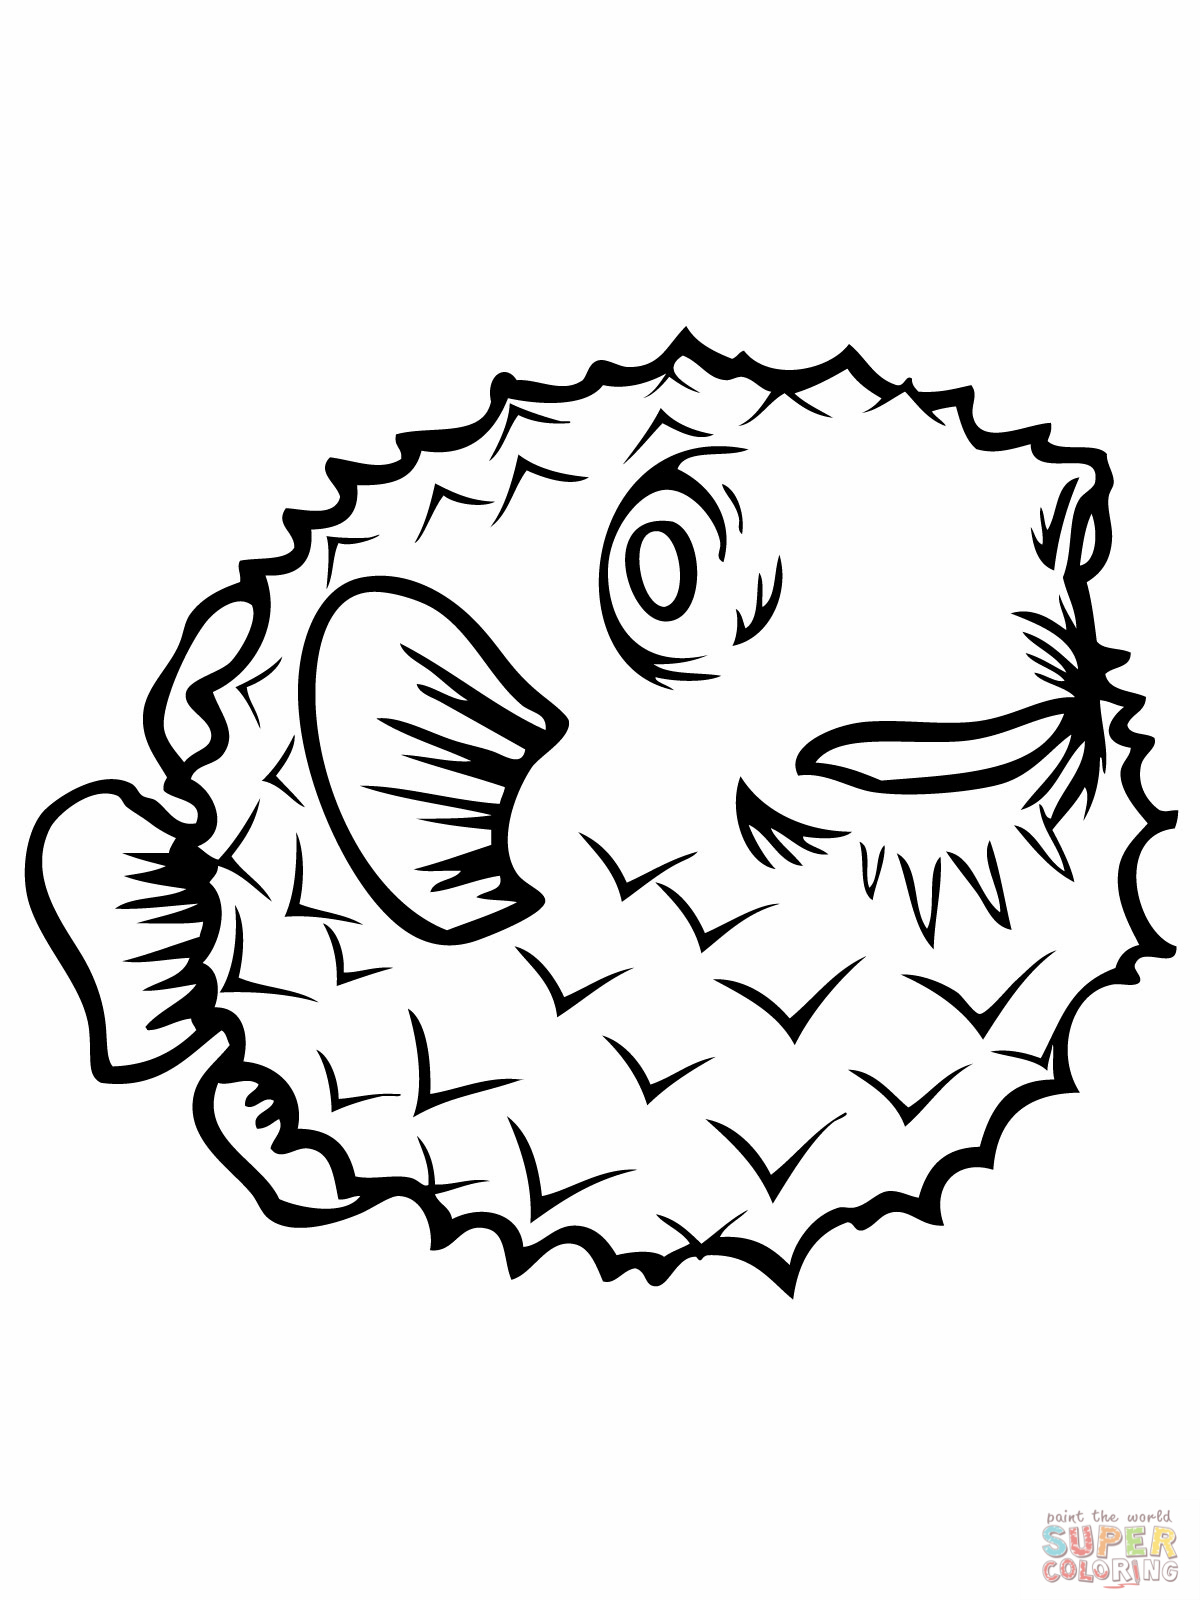 porcupine coloring page clipart panda free clipart images